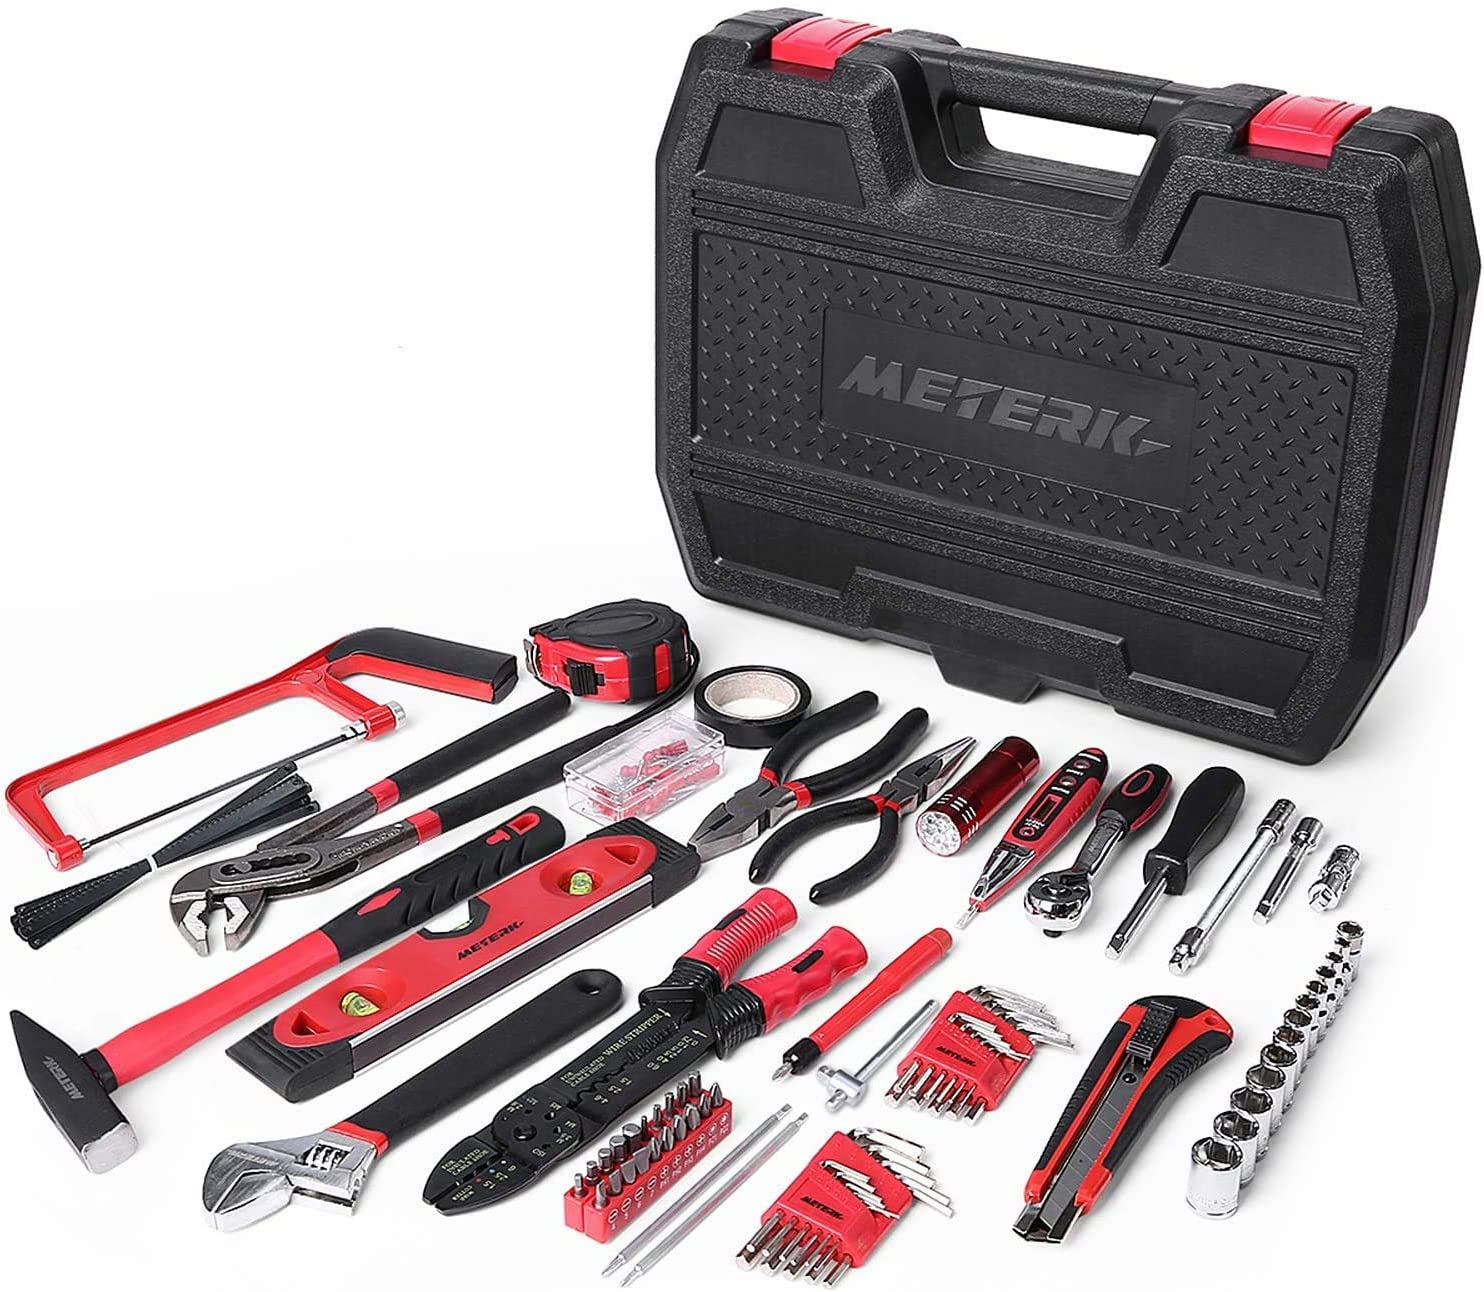 Meterk 170 Pcs Home Tool Kit- Household/Auto Repair Mechanic Tool Set with Wrenches, Screwdriver Set, Sockets Kit, Hammer, Pliers and Toolbox Storage Case for Homeowner, DIYER, Handyman…